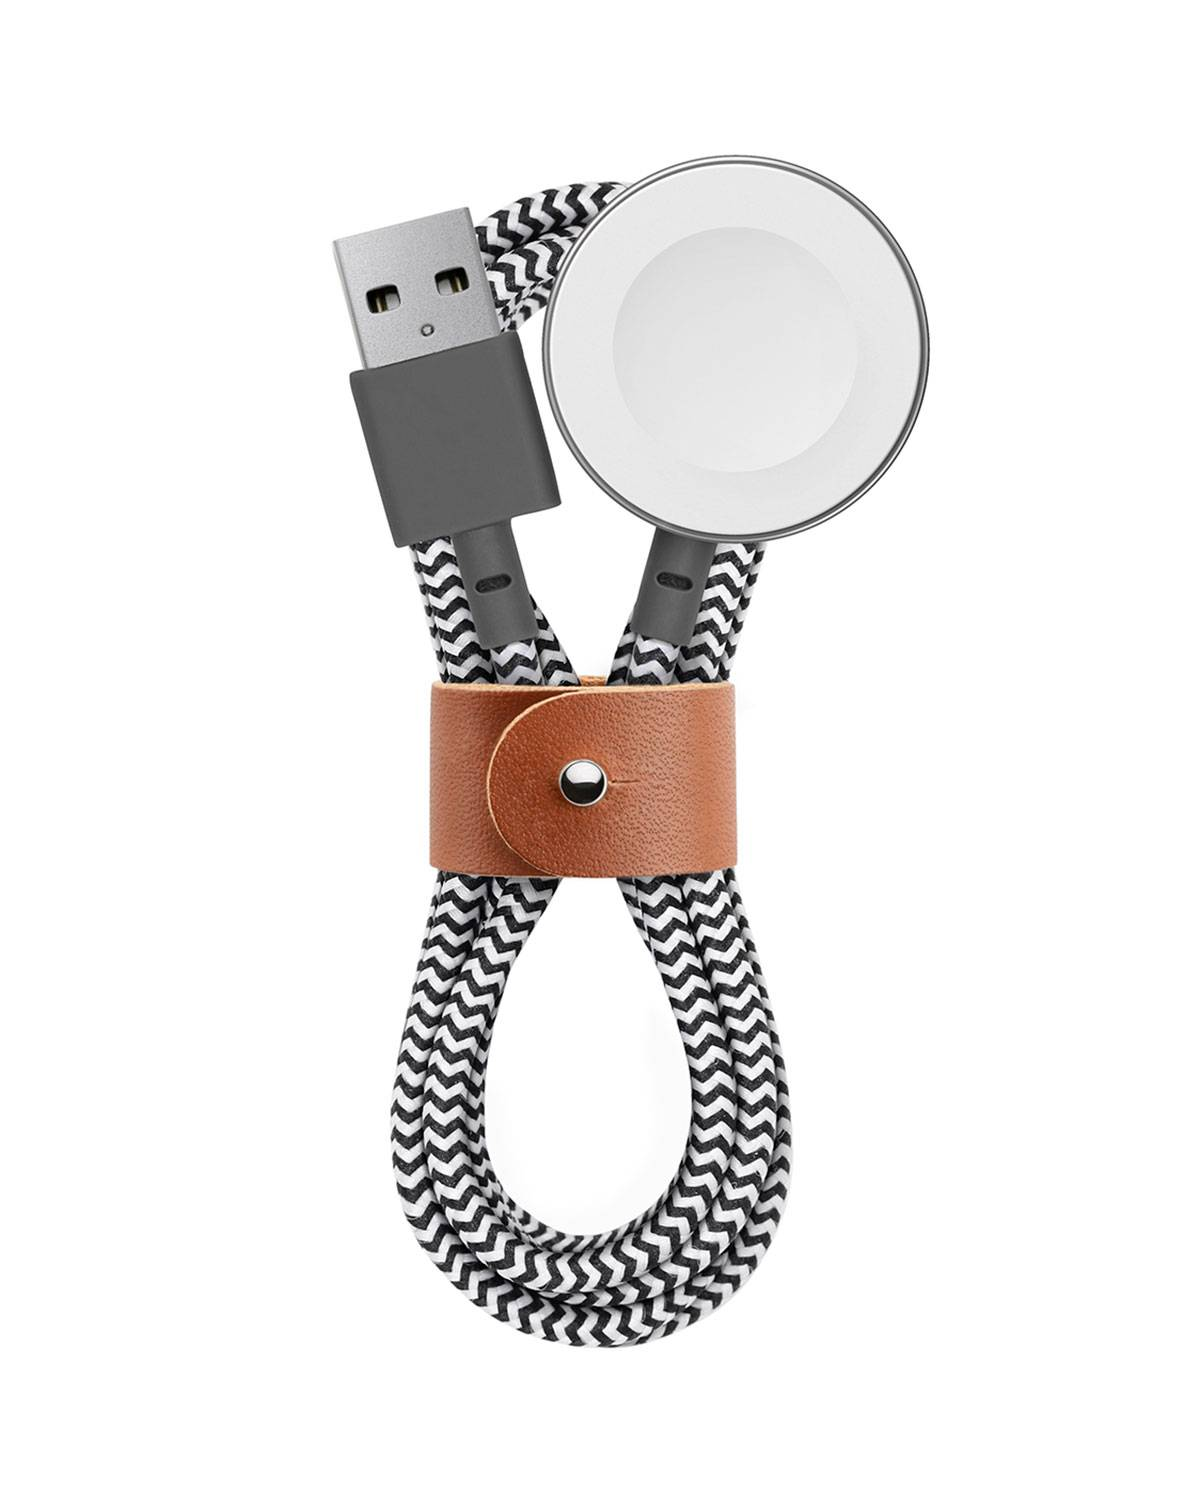 Apple Watch Charging Cable - ZEBRA